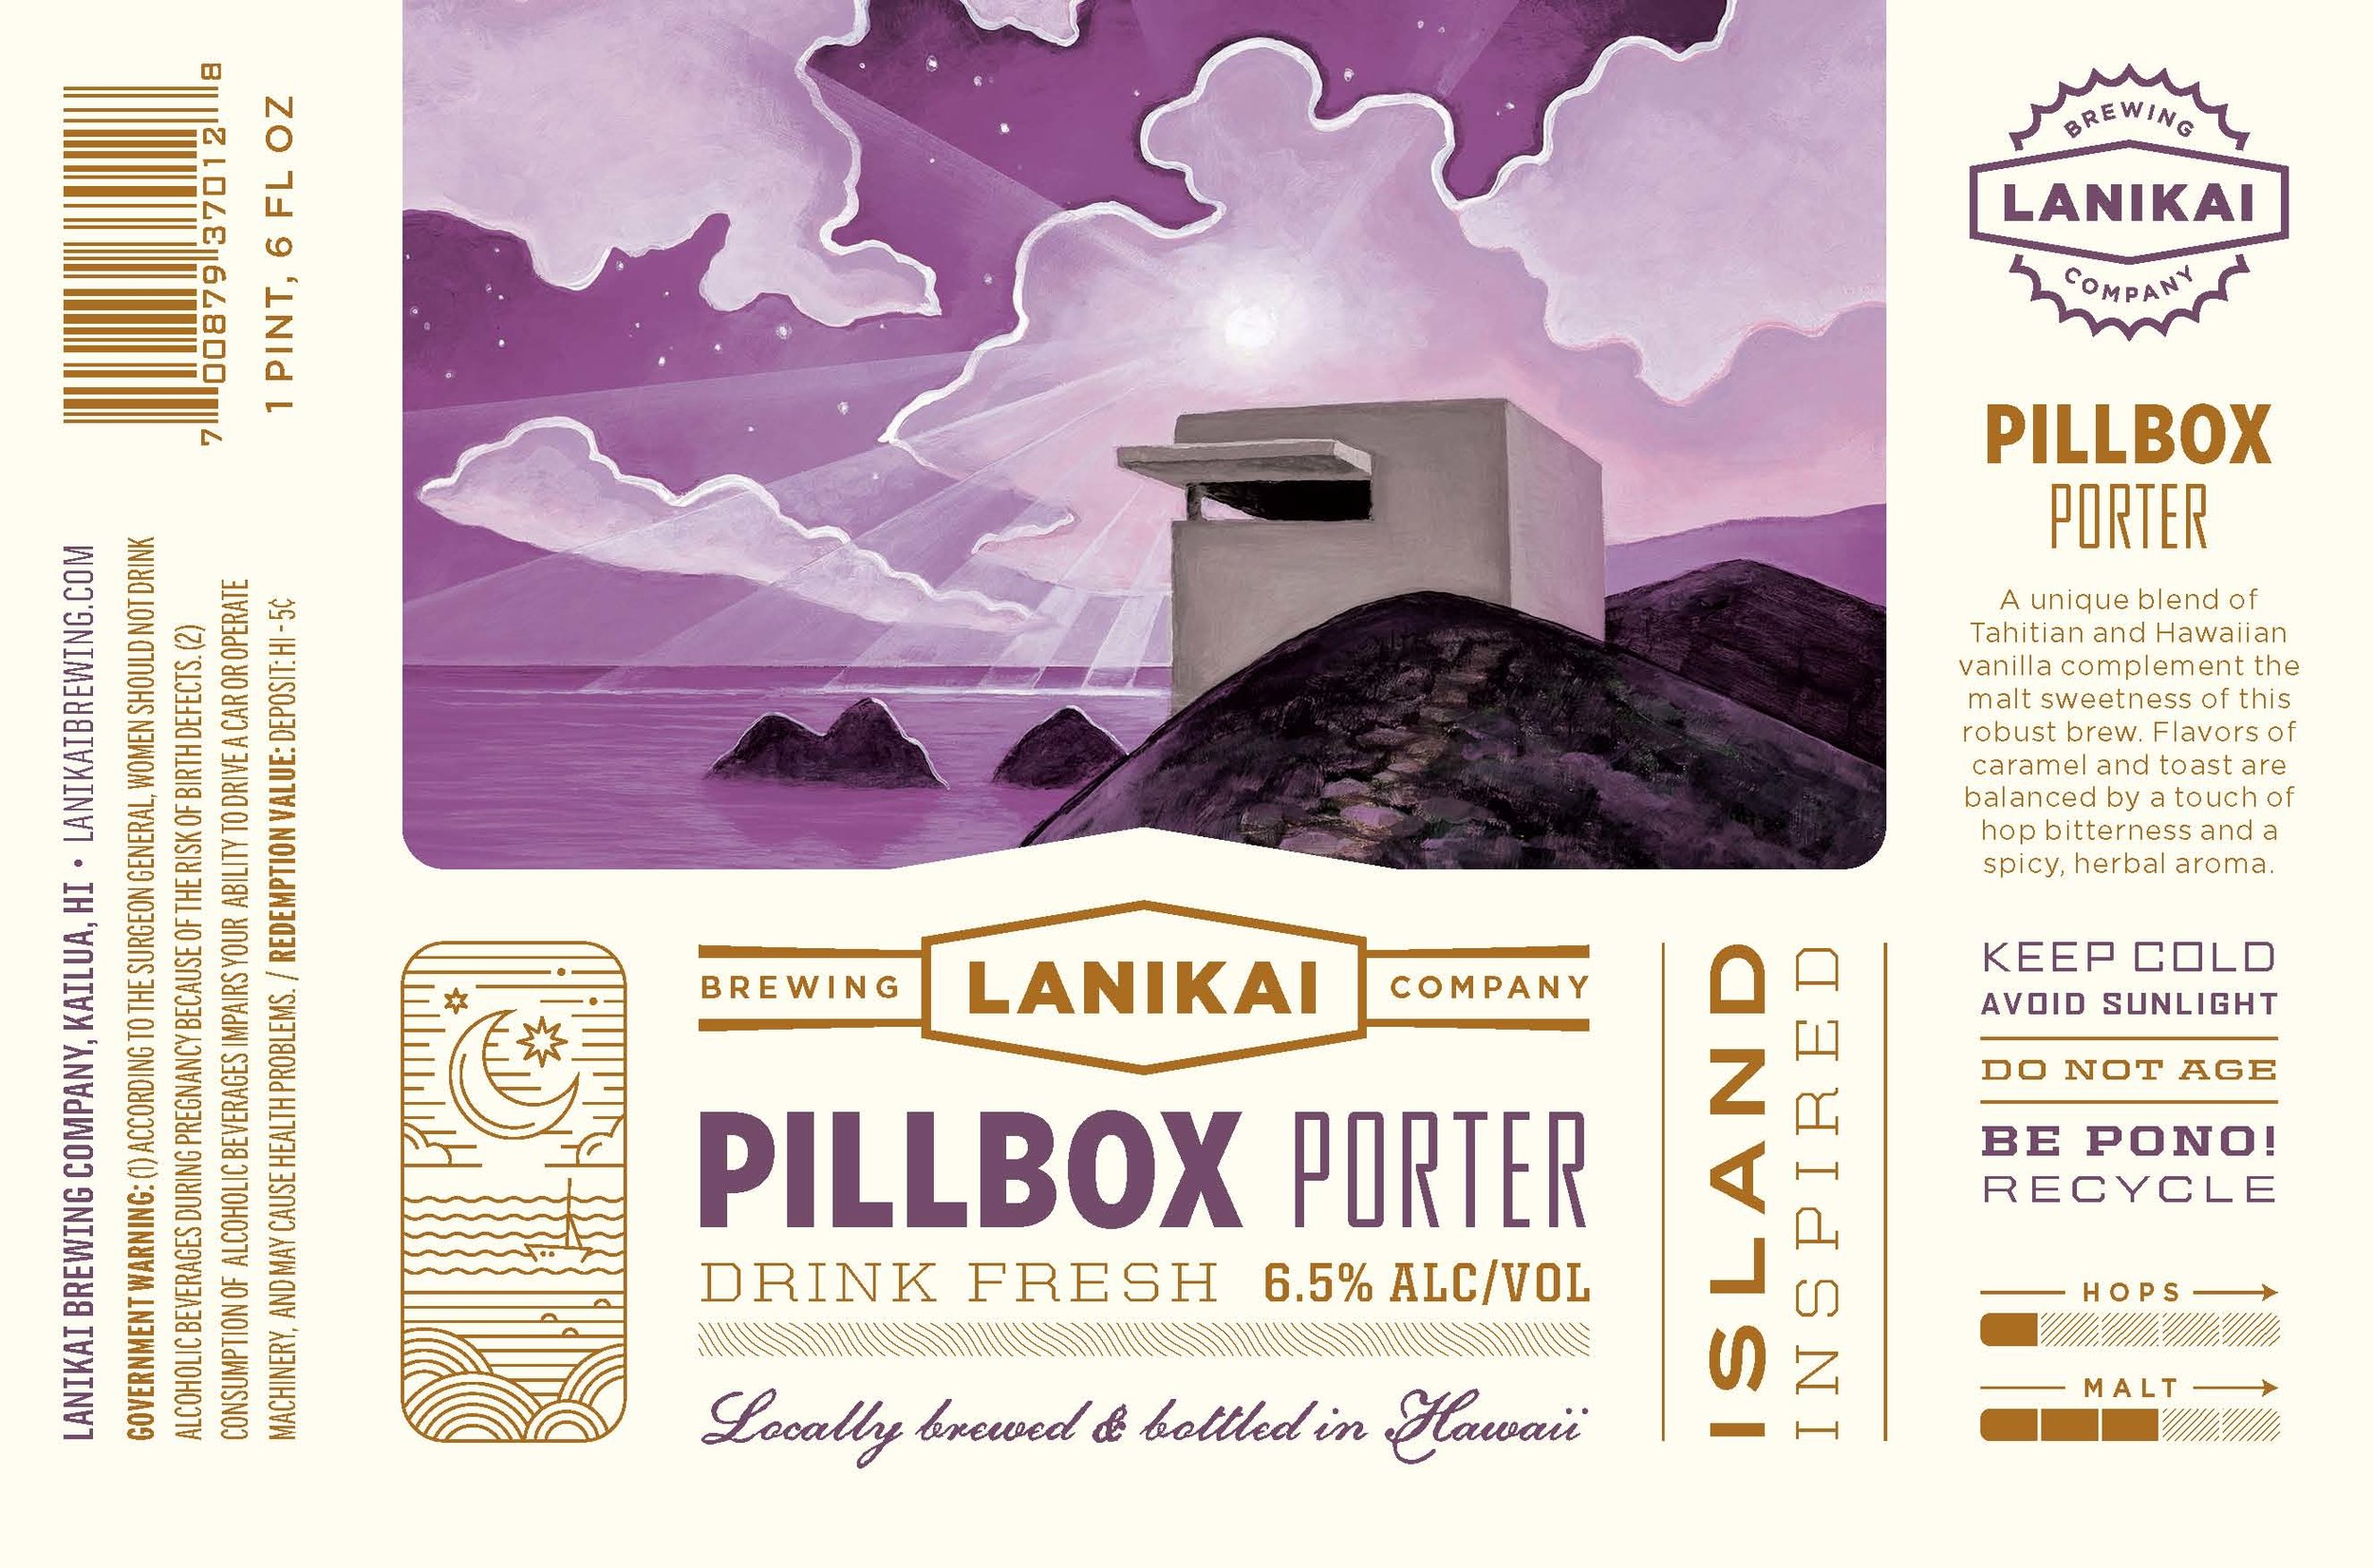 lanikai-brewing-pillbox-porter-label.jpg